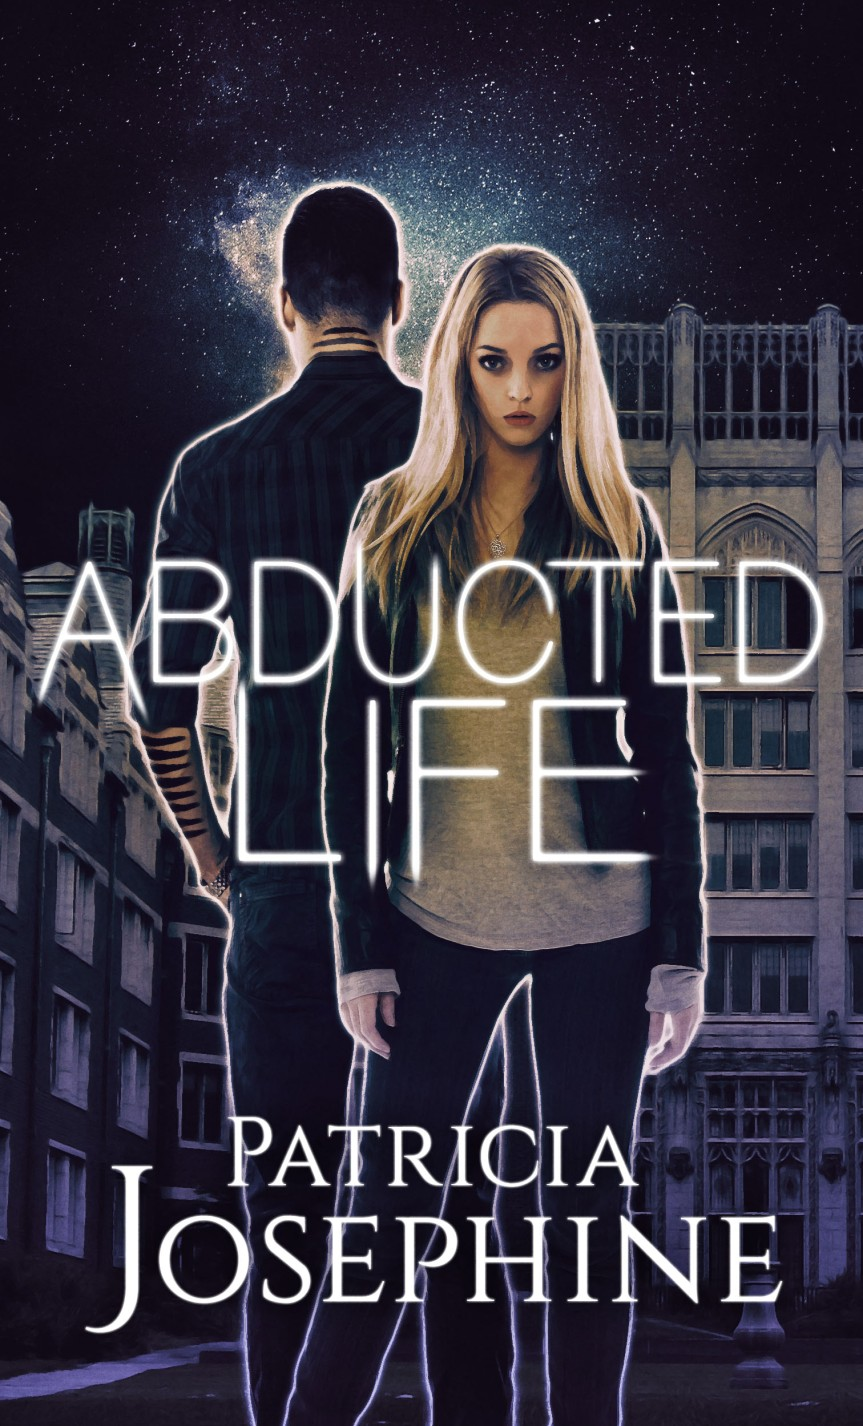 Abducted Life-Patricia Josephine | Coming February 14th2017